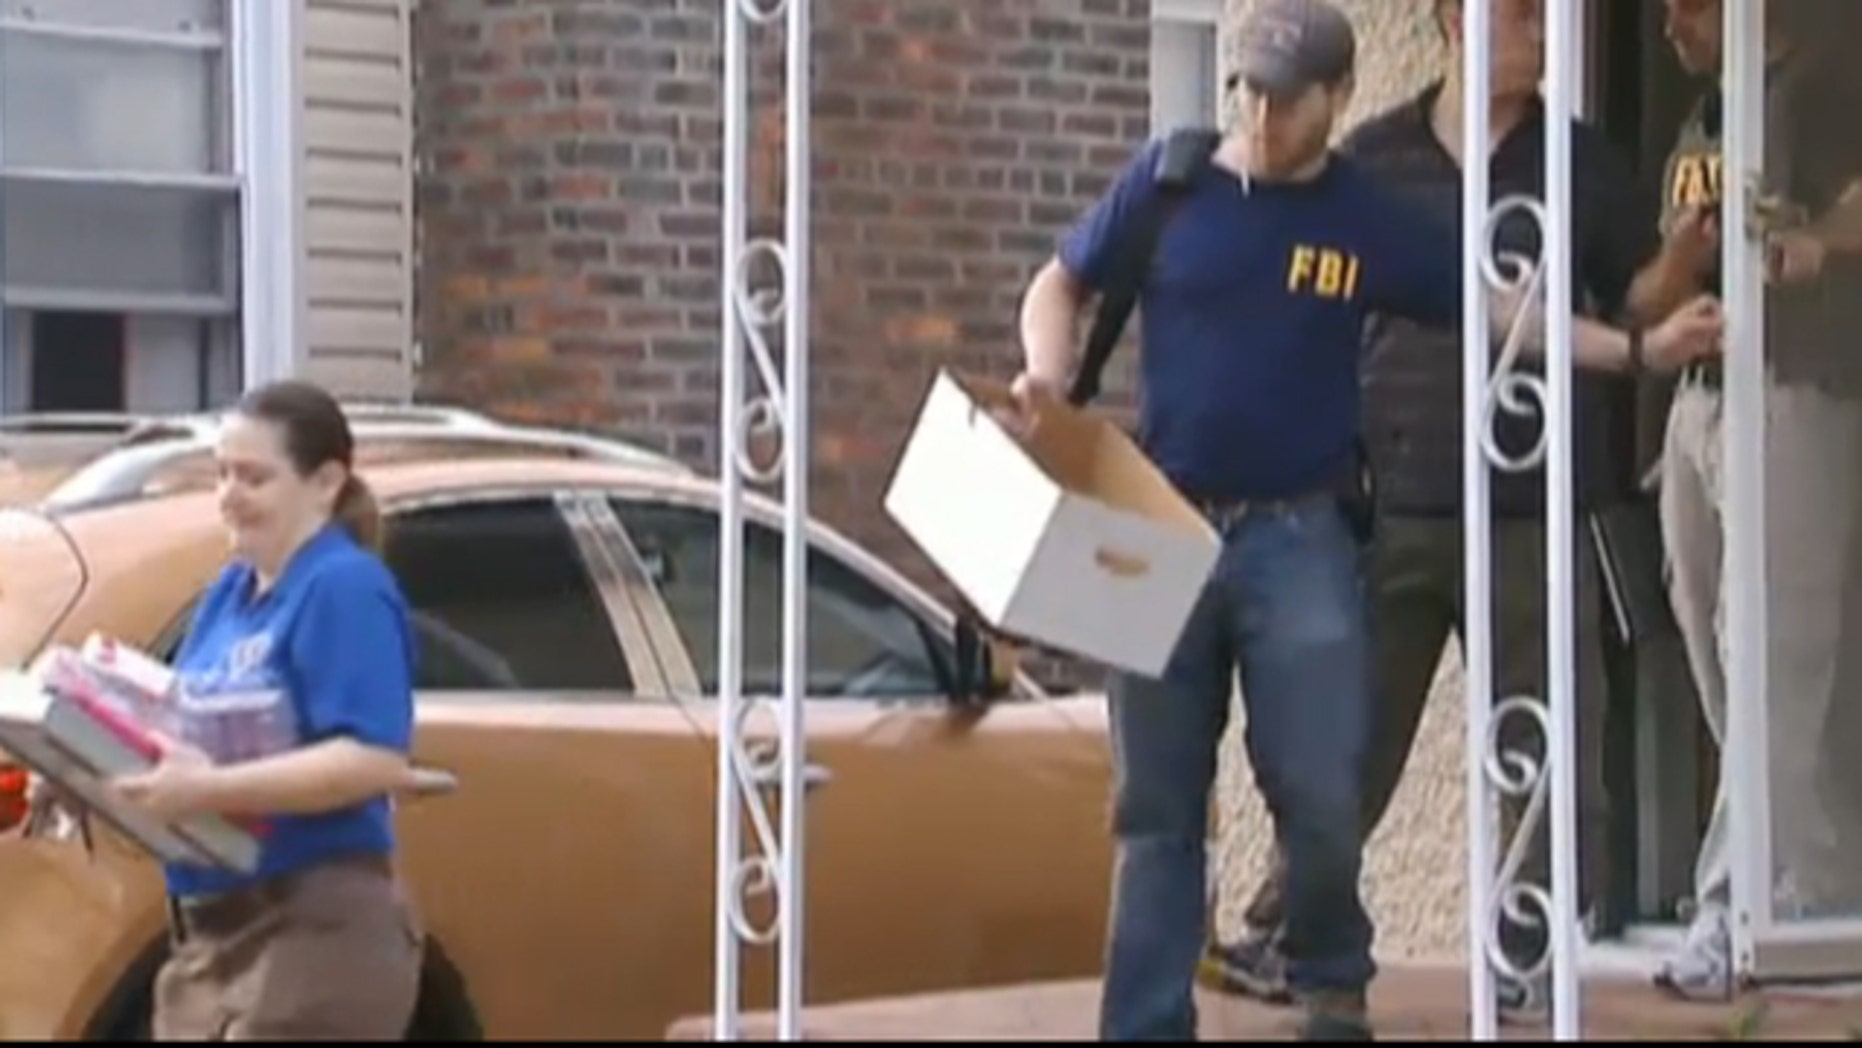 July 19, 2011: FBI agents execute a search warrant at the Long Island, NY, home of a suspected member of notorious hacking group Anonymous.